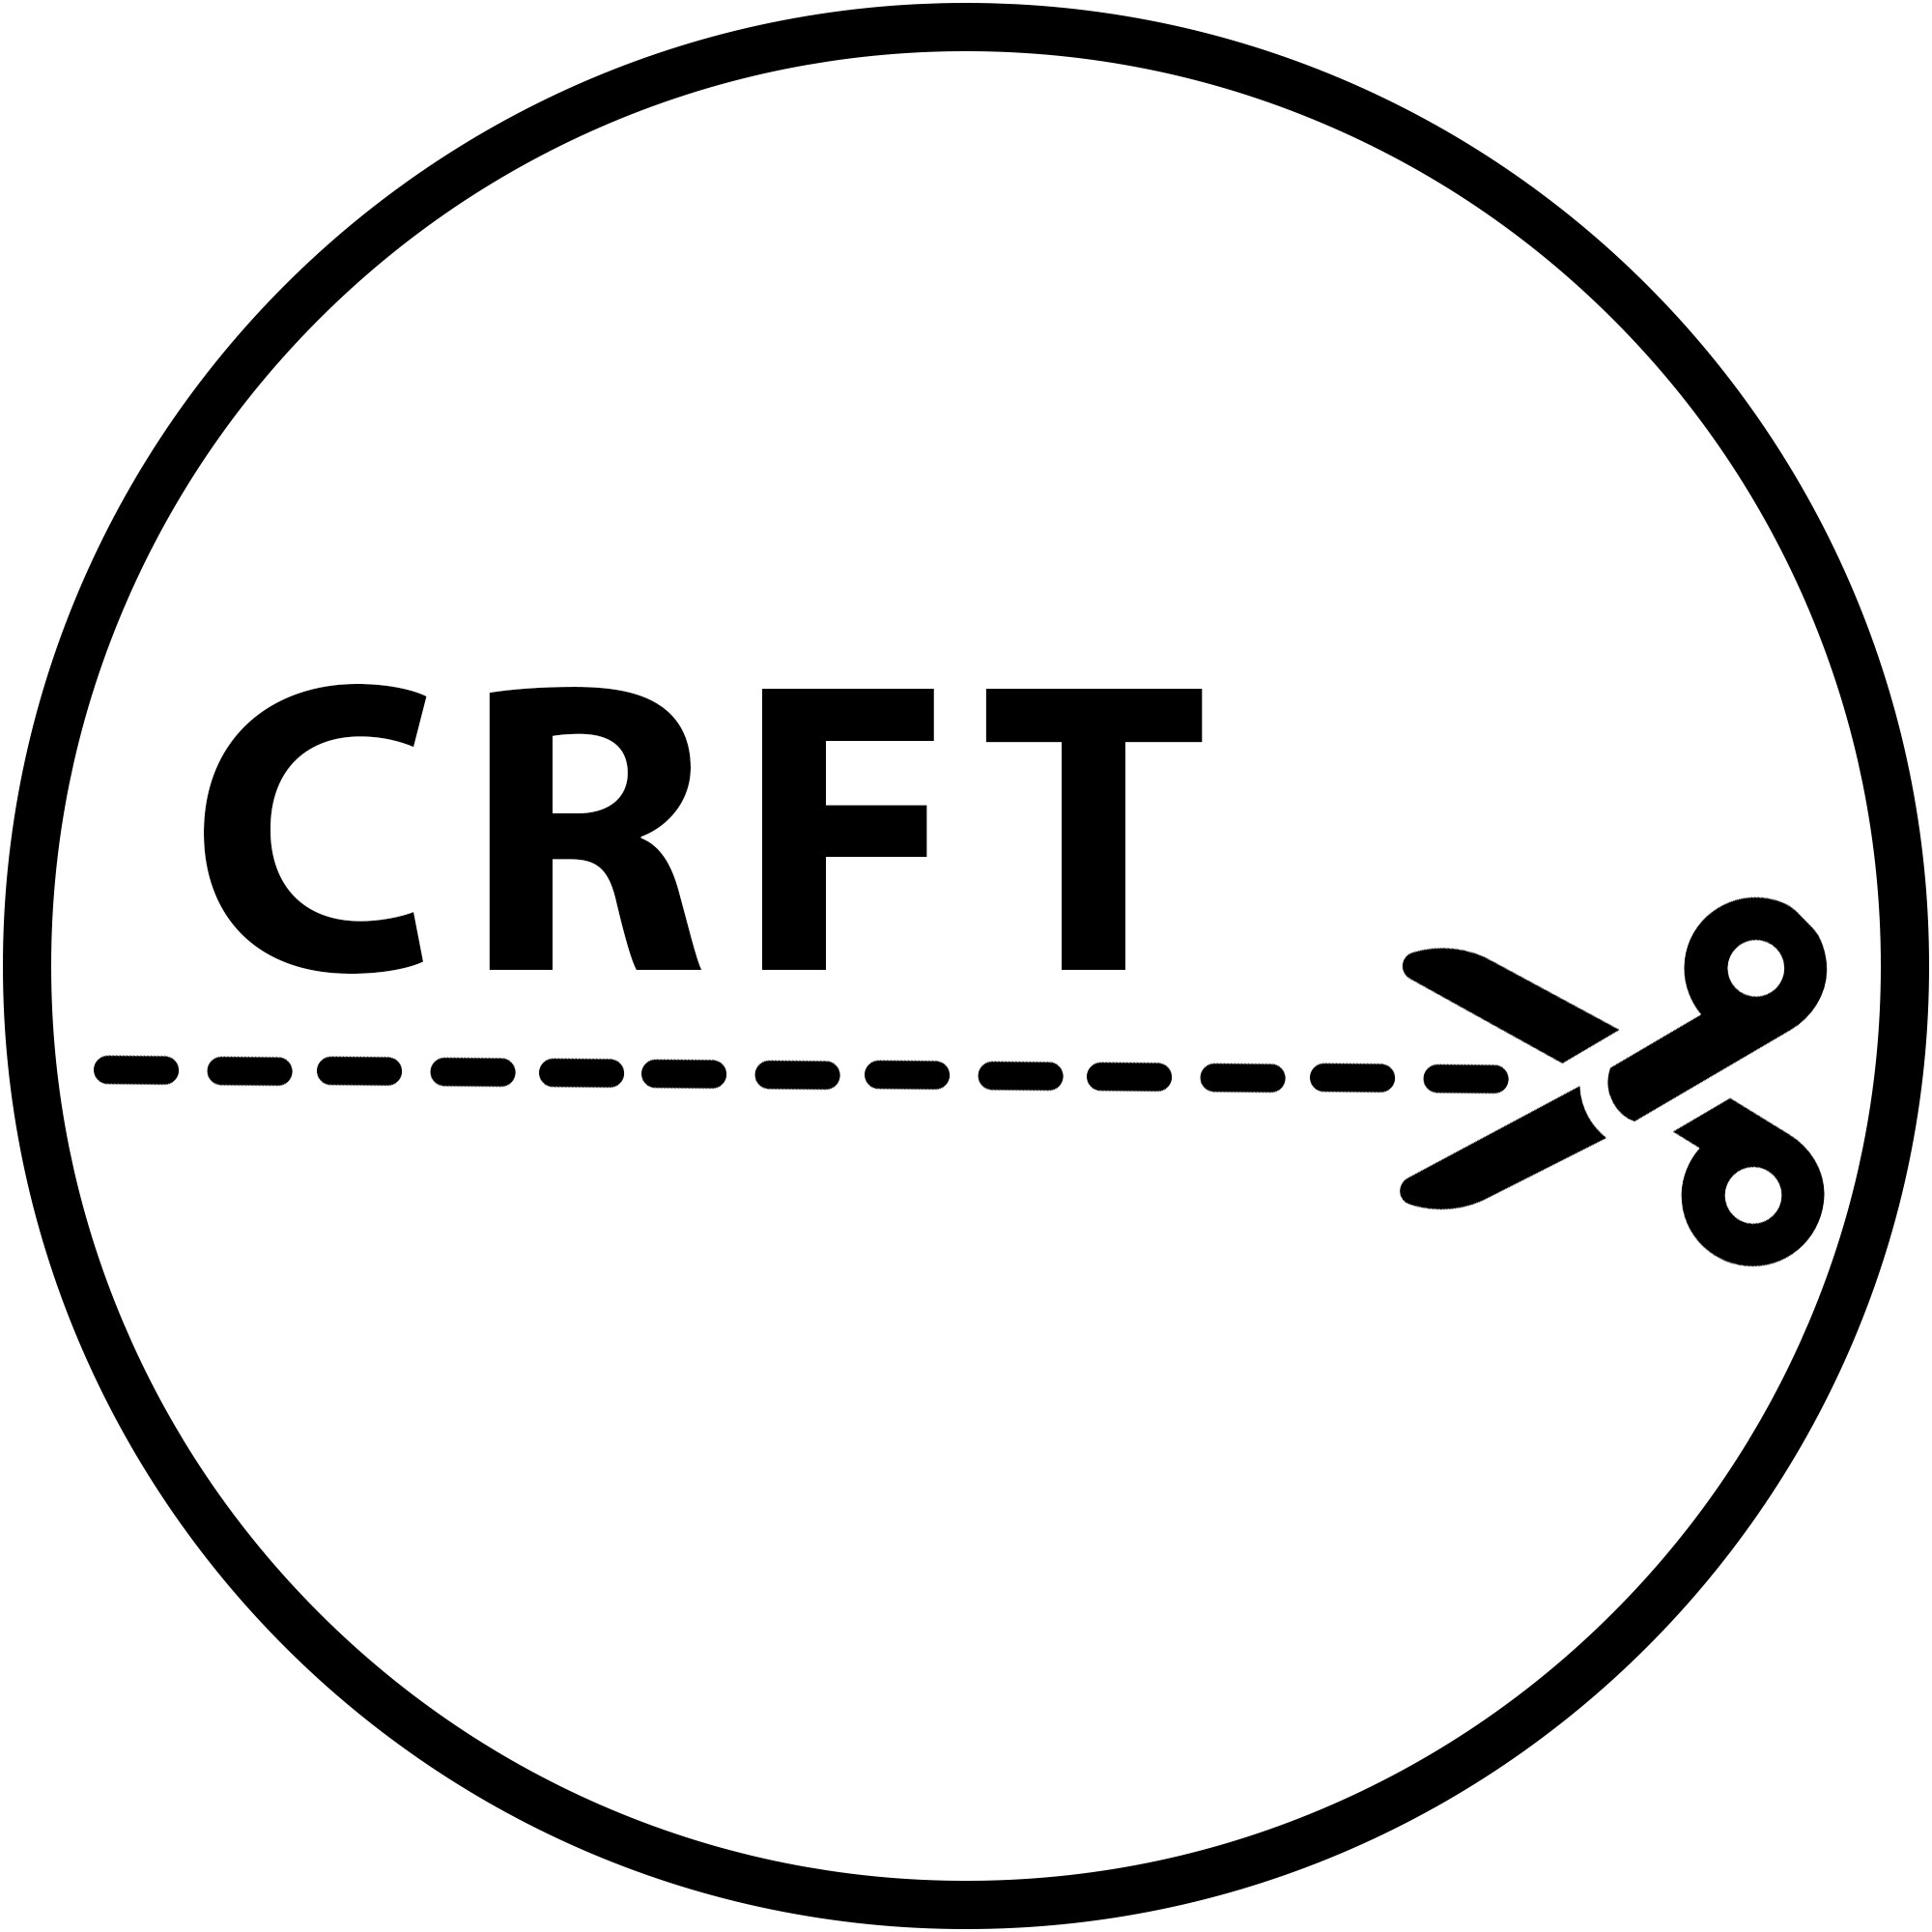 CRFT's profile picture